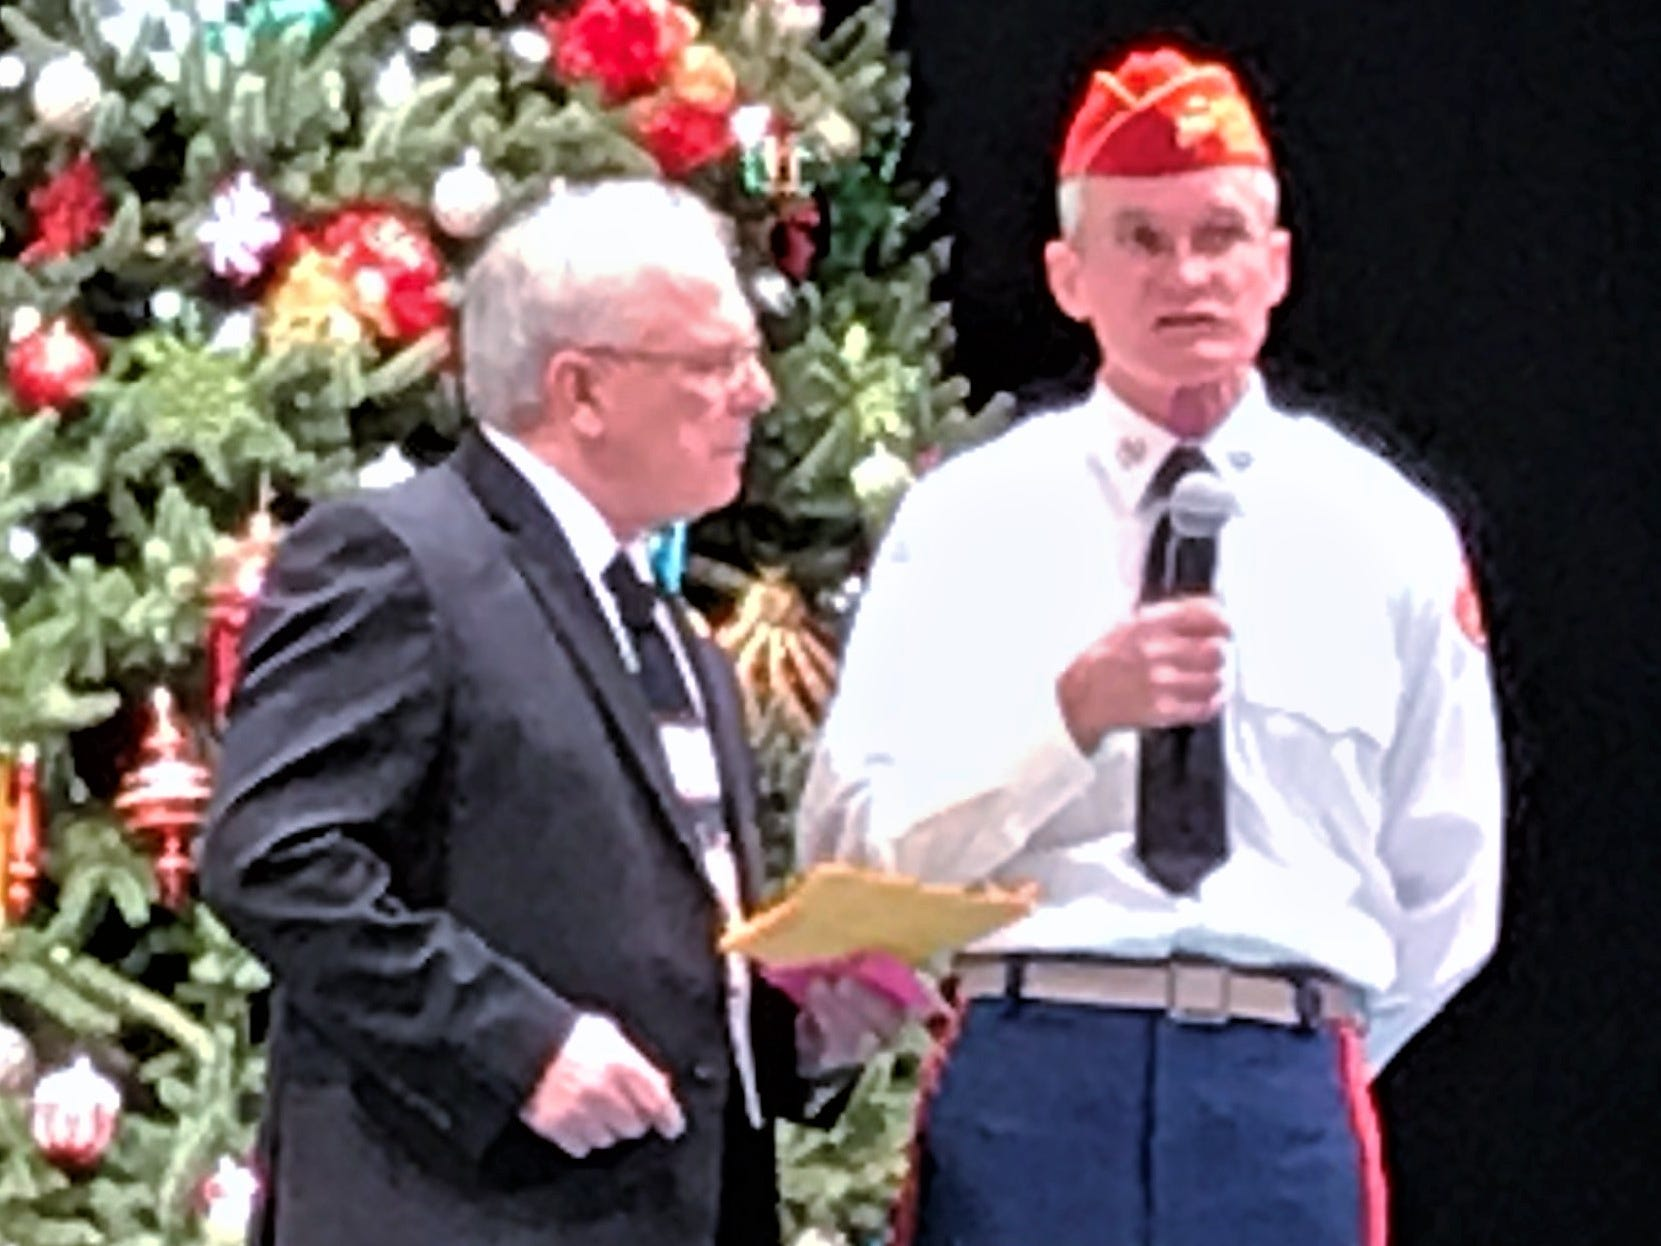 Matthew McInerny of the E.J. Brewer Detachment of the Marine Corps League presents a $500 check to Master of Ceremonies Tom Bruner during Sunday's Arctic League broadcast.